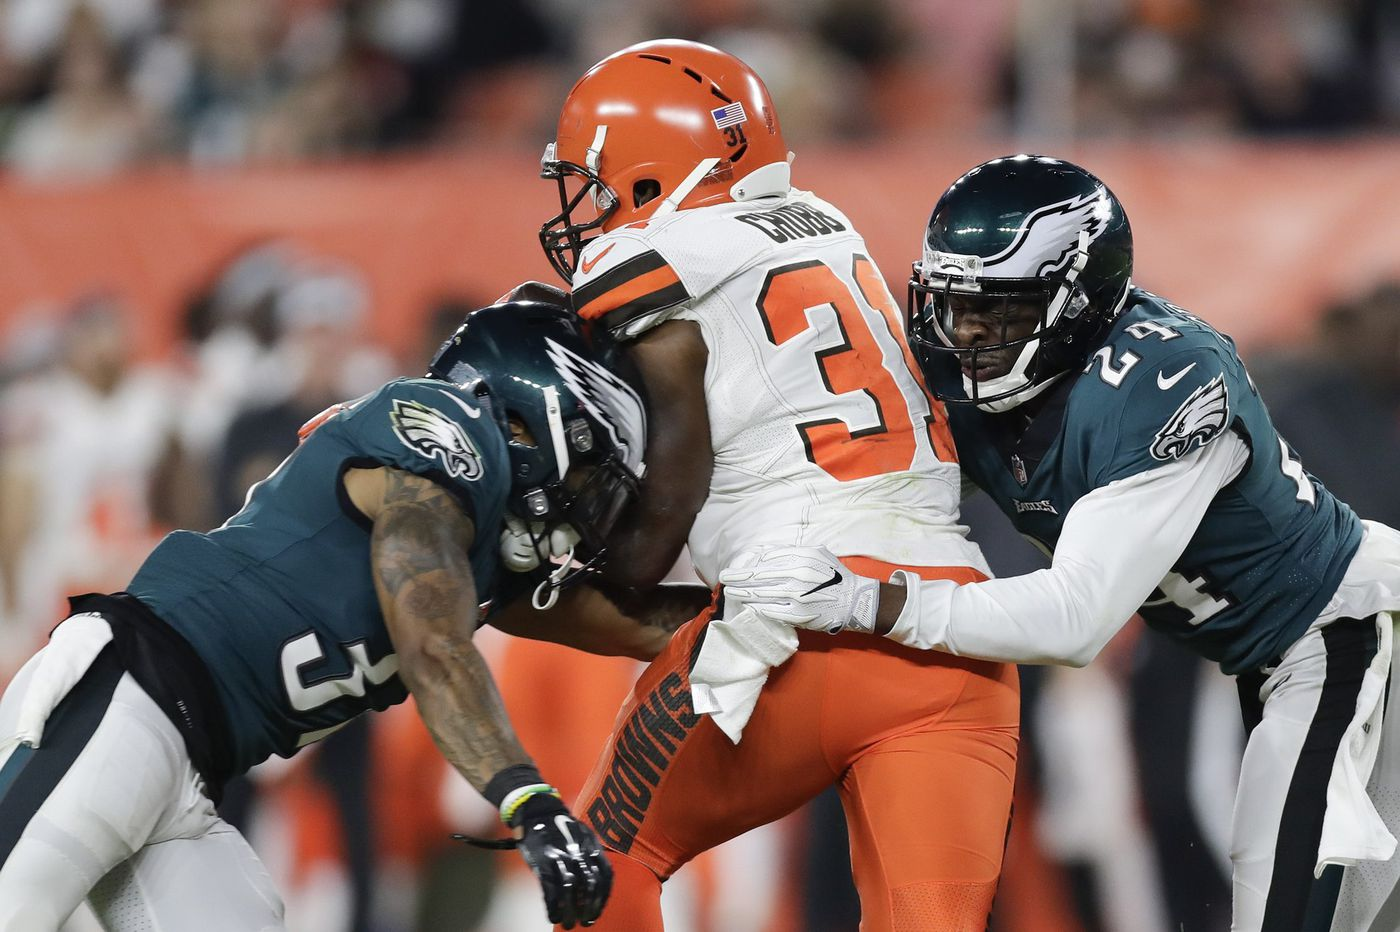 The NFL's difficult balancing act: Troy Vincent wants to protect players without diminishing the game